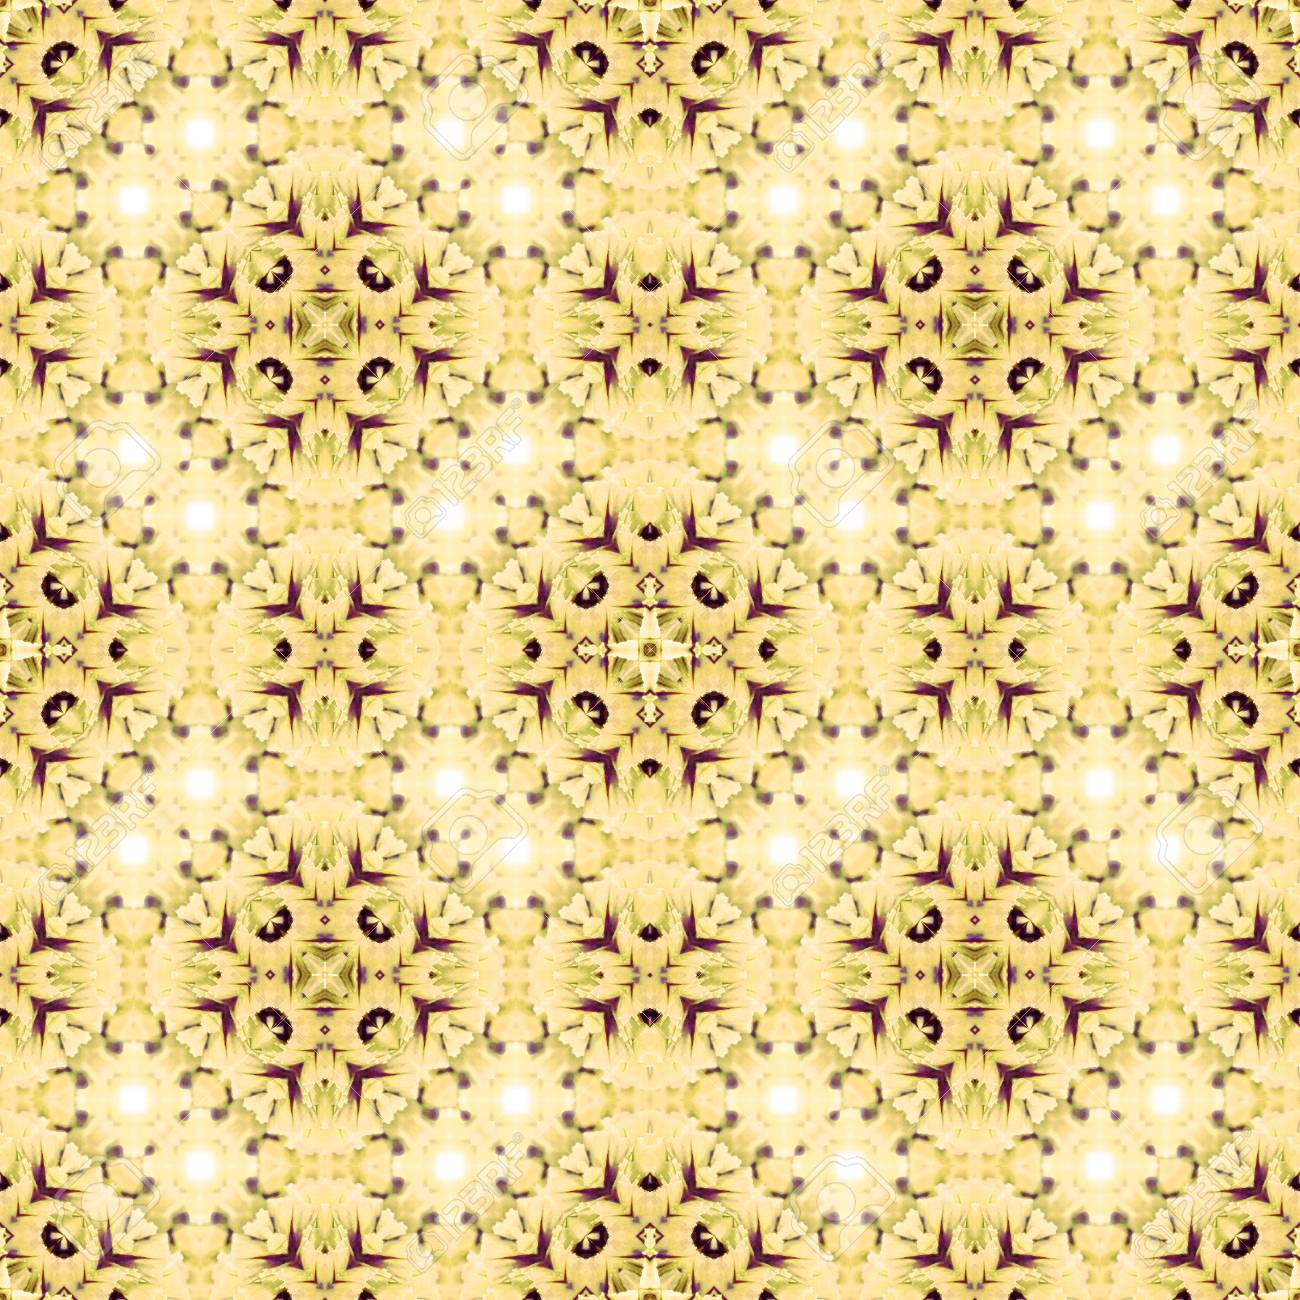 Abstract flowers seamless pattern background. Kaleidoscope from flowers. Hydraulic tile design. - 104074676